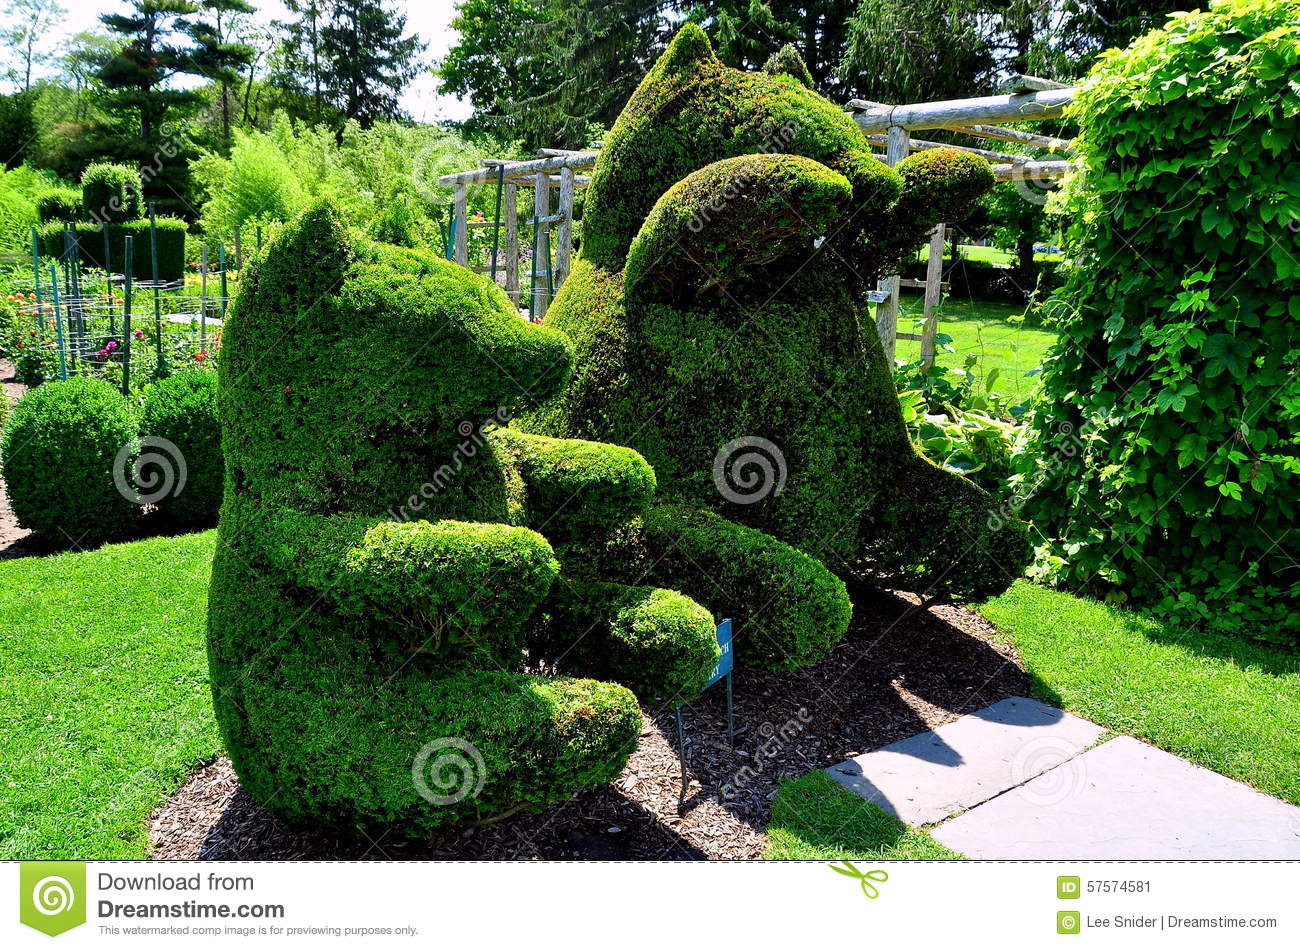 7 975 Green Topiary Photos Free Royalty Free Stock Photos From Dreamstime